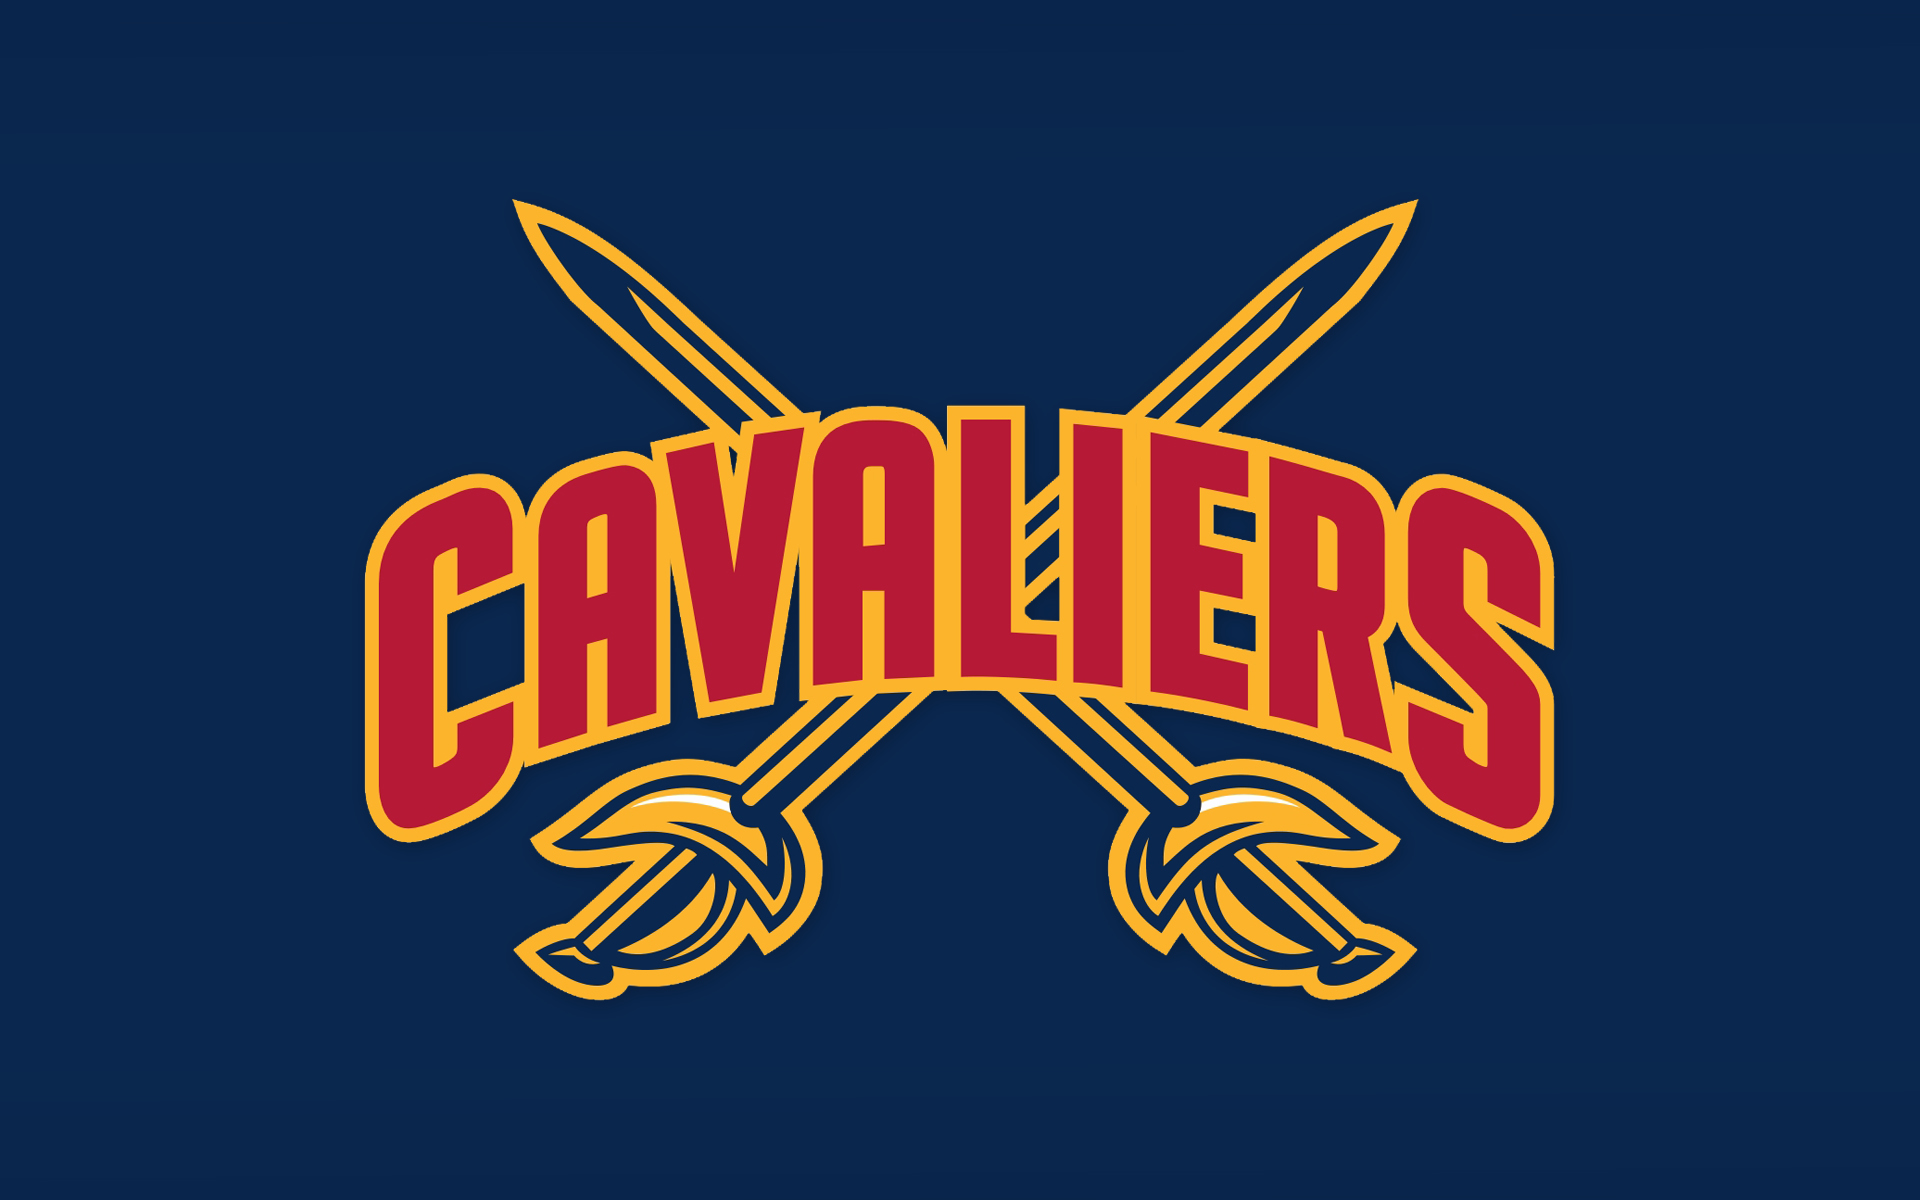 Cleveland Cavaliers Full HD Wallpaper And Background Image